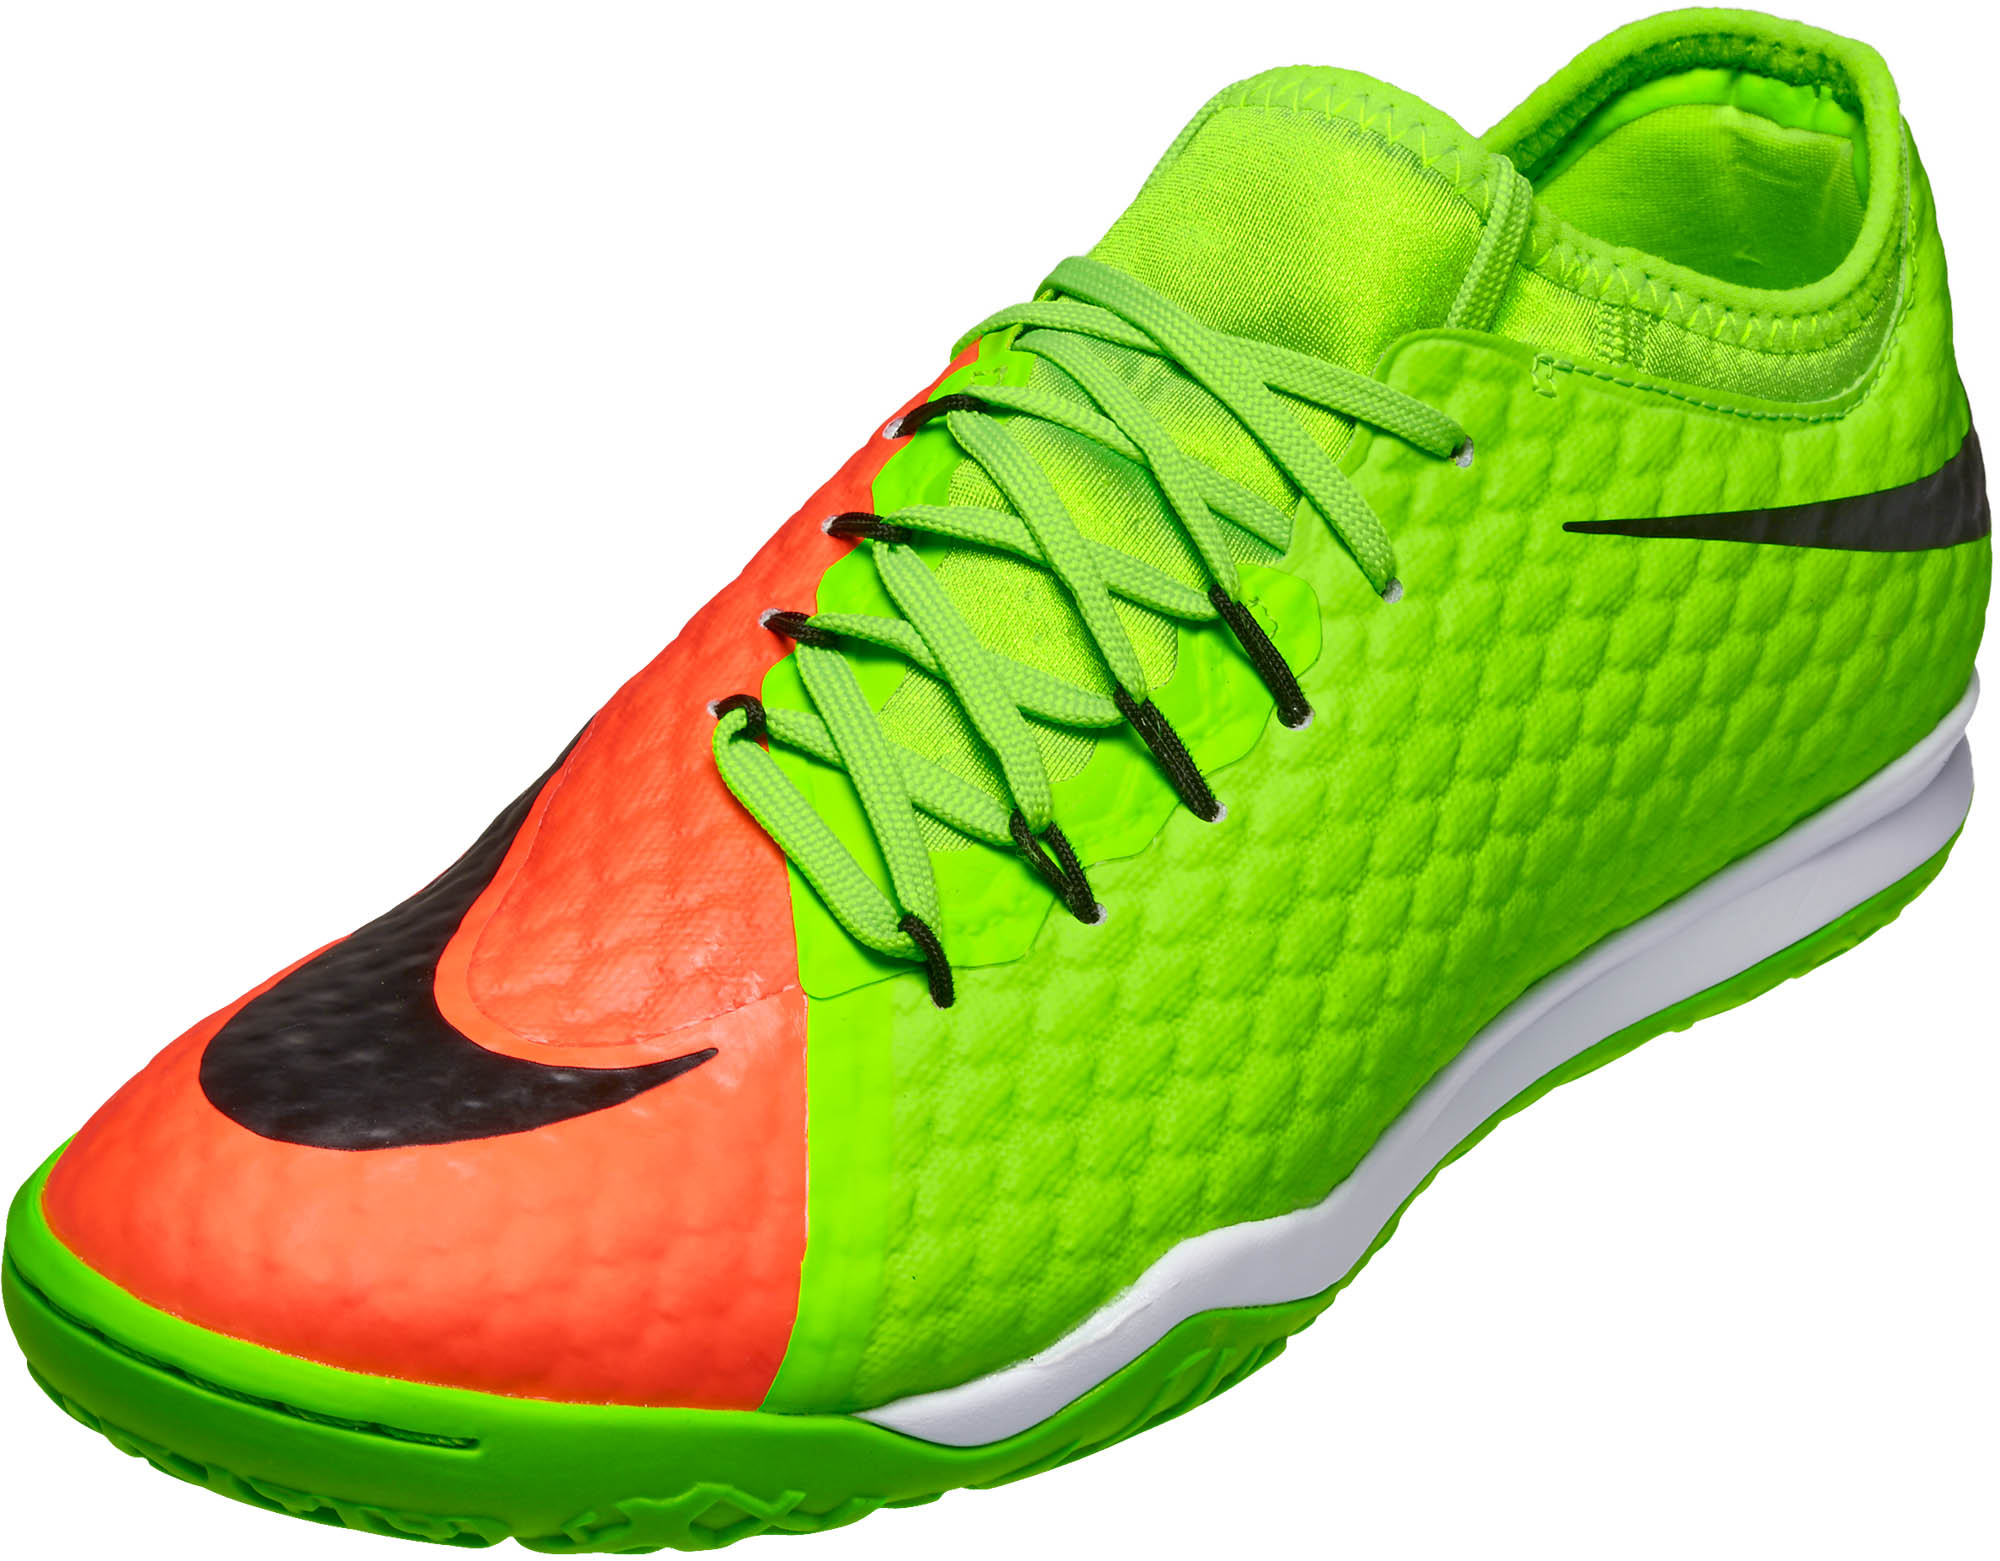 official photos 3bd5c e5c59 Nike HypervenomX Finale II IC – Electric Green/Hyper Orange